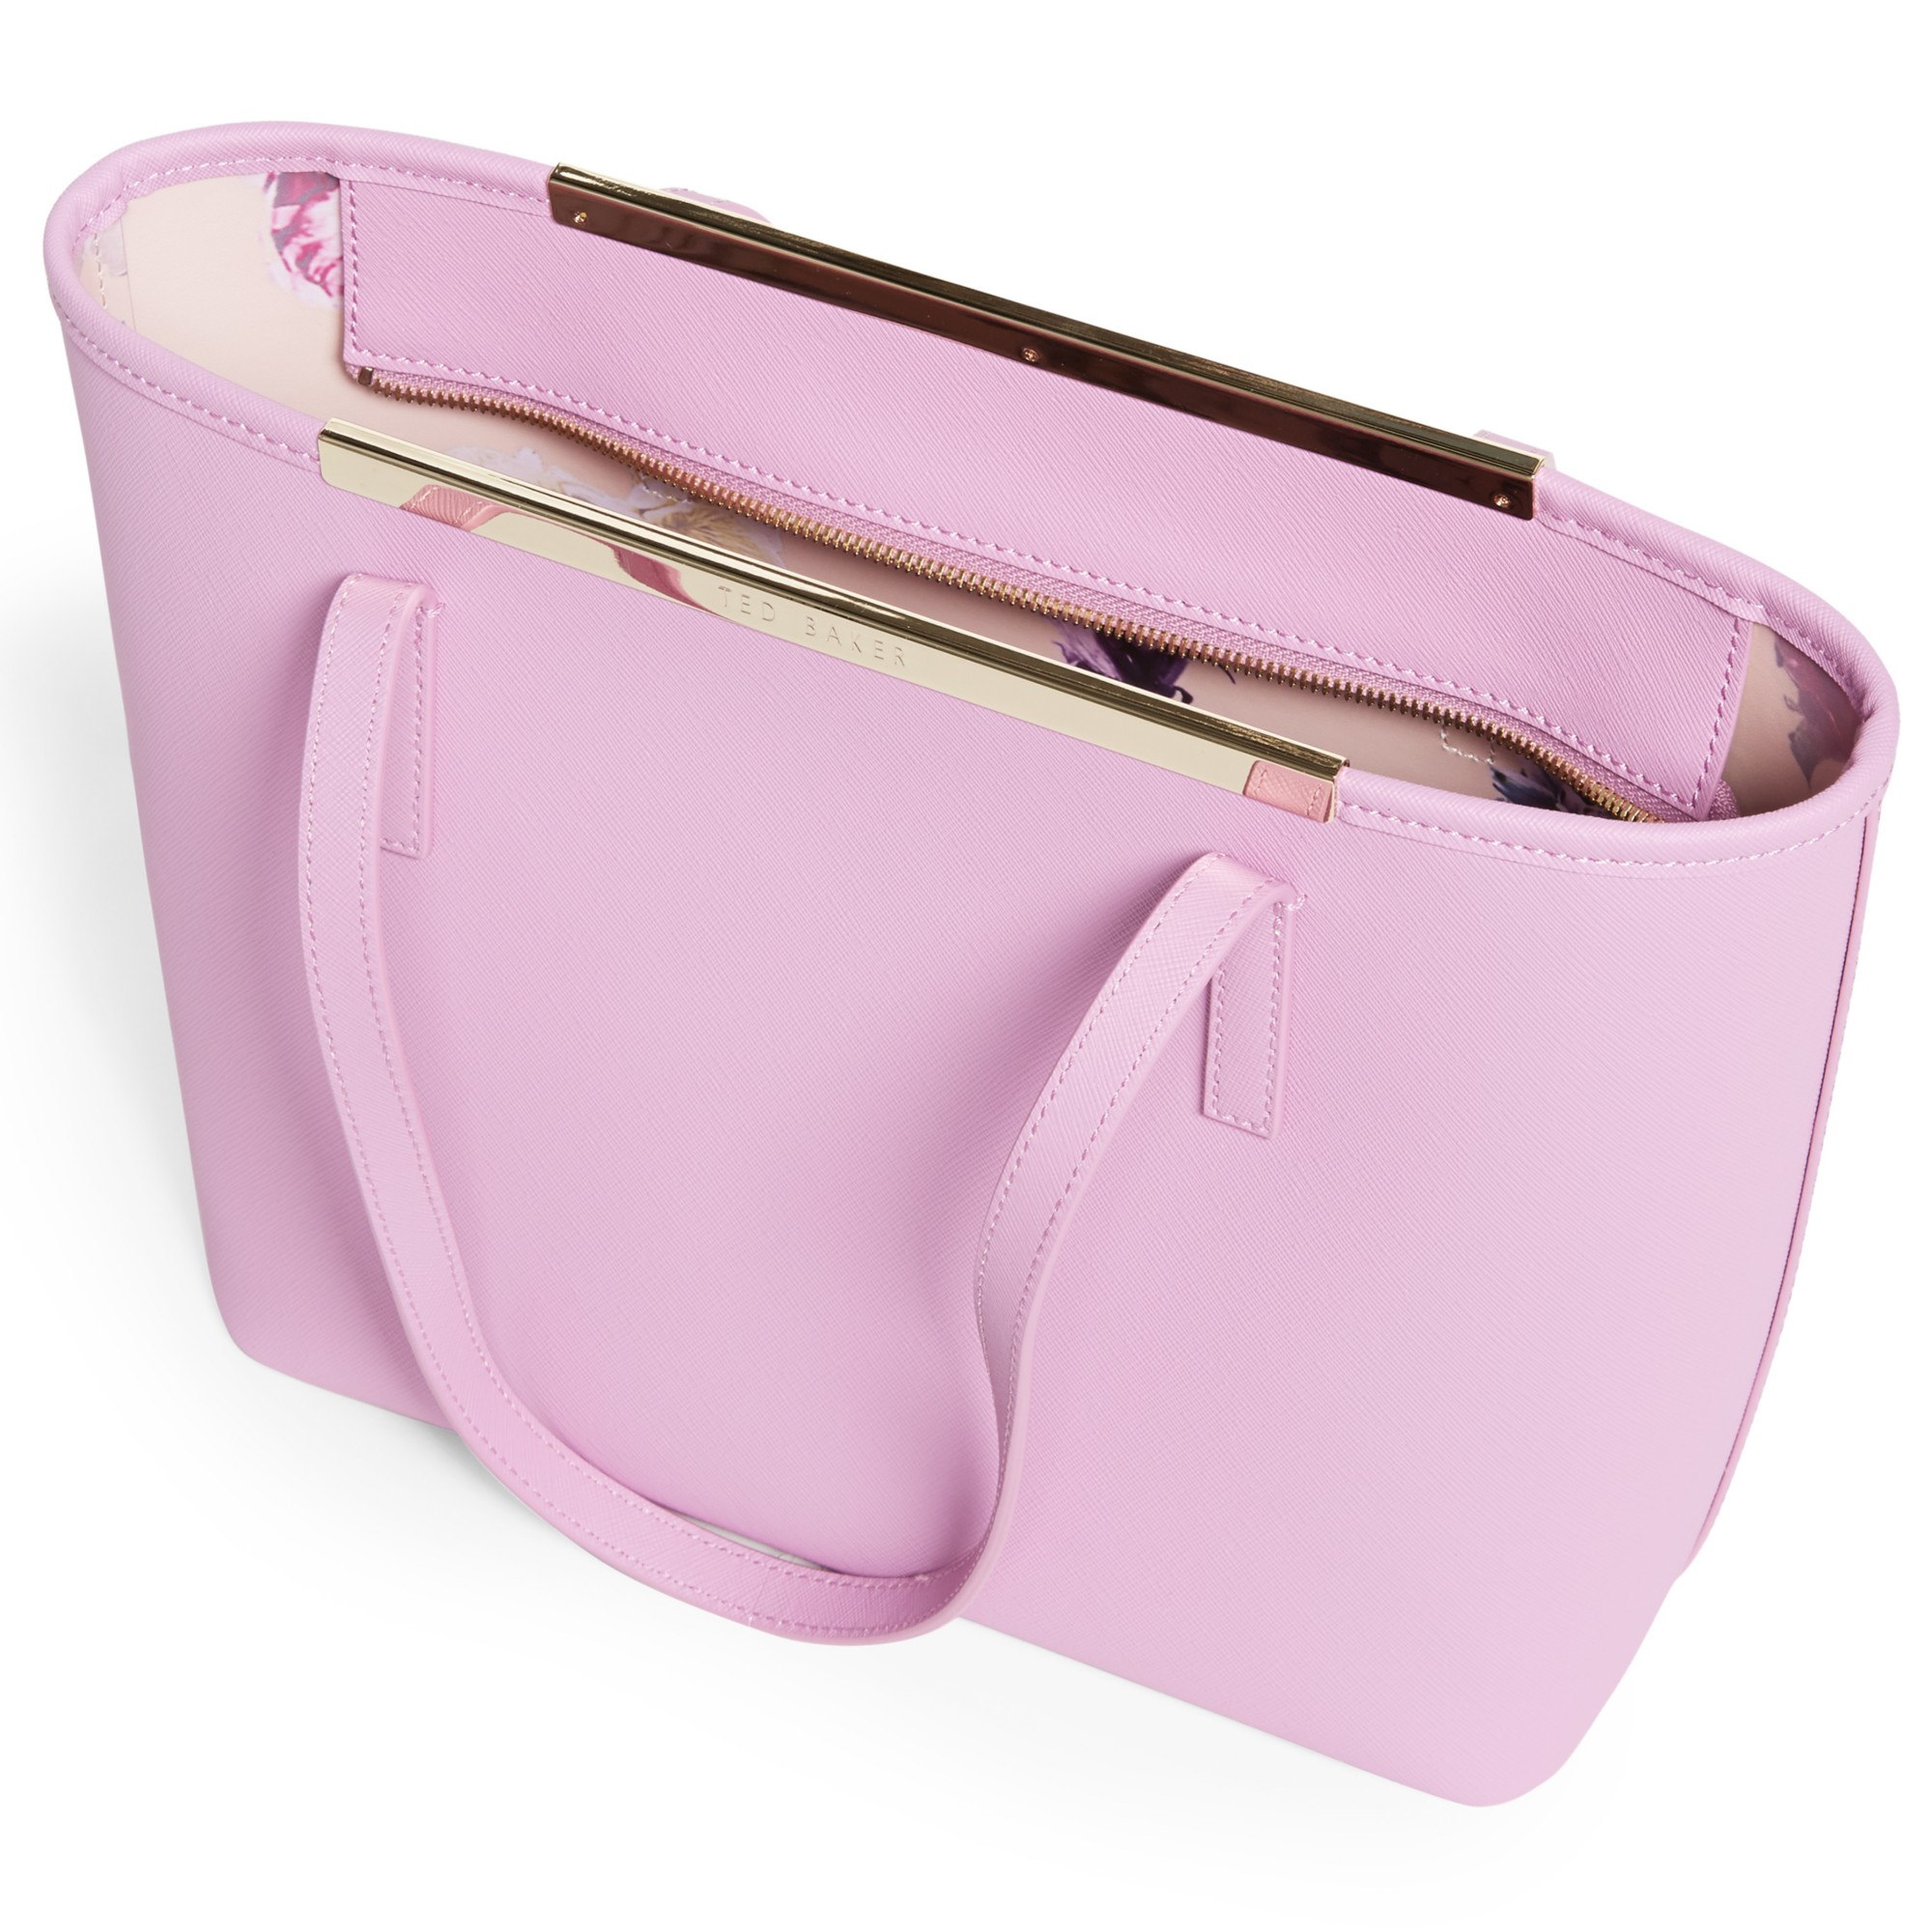 a7d091f4f07707 Ted Baker Phoebie Crosshatch Leather Shopper Bag in Pink - Lyst